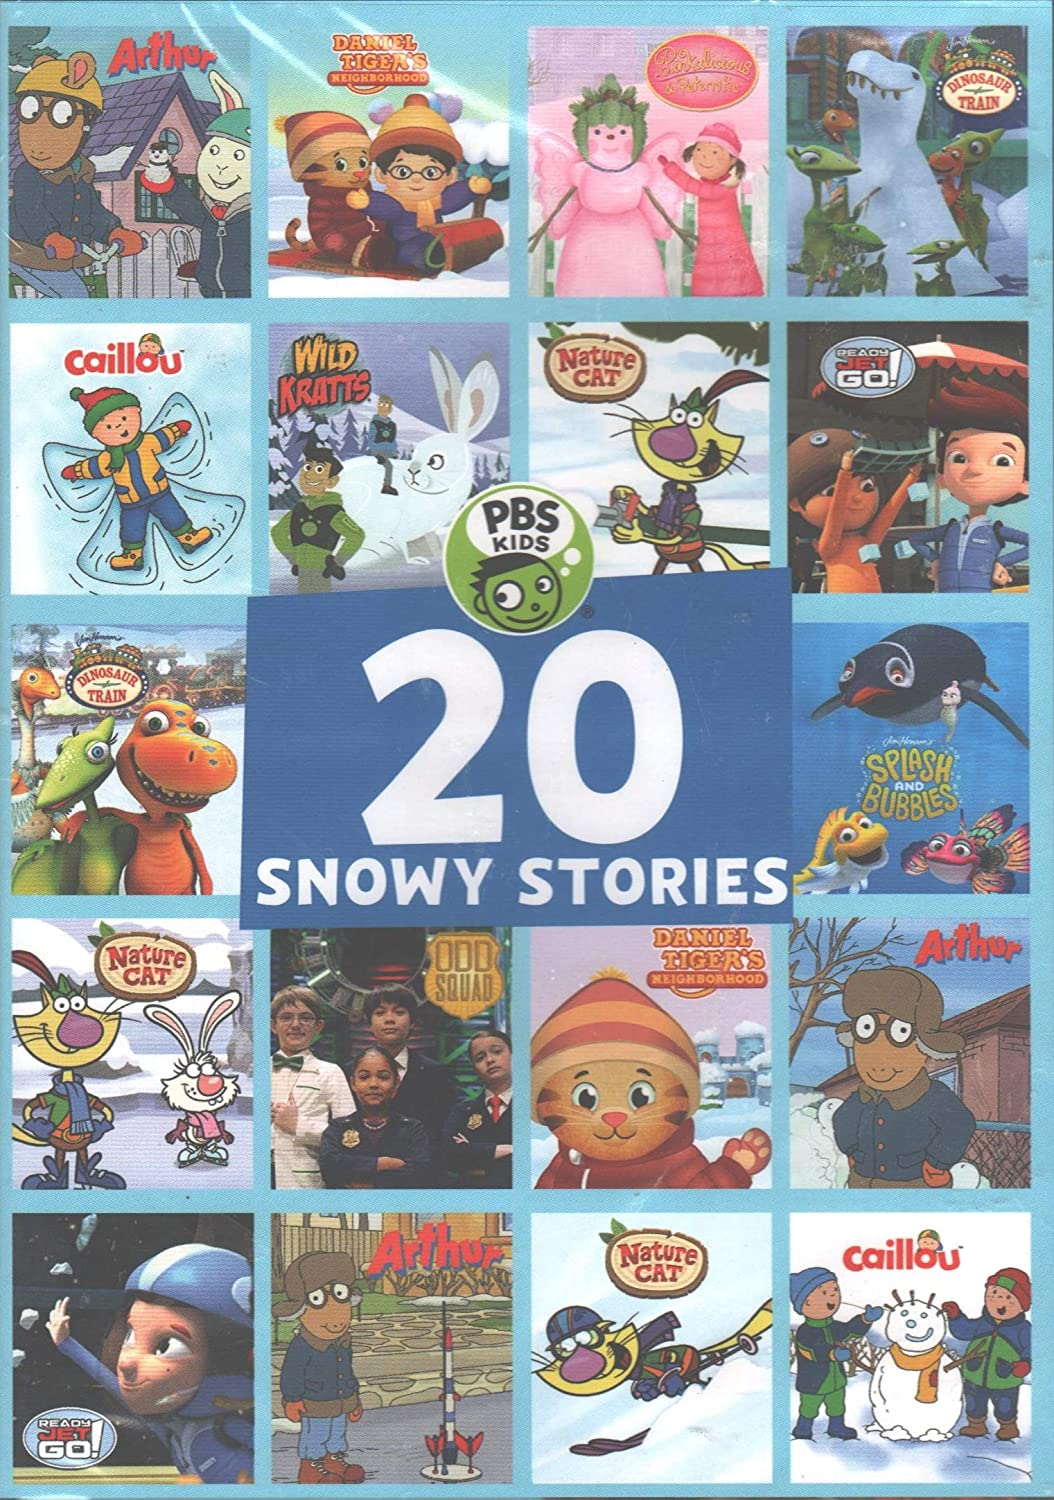 PBS Kids - 20 Snowy Stories: Arthur / Caillou / Daniel Tiger / Dinosaur Train / Nature Cat / Odd Squad / Ready Jet Go! / Splash and Bubbles / Wild Kratts / Pinkalicious and Peterrific